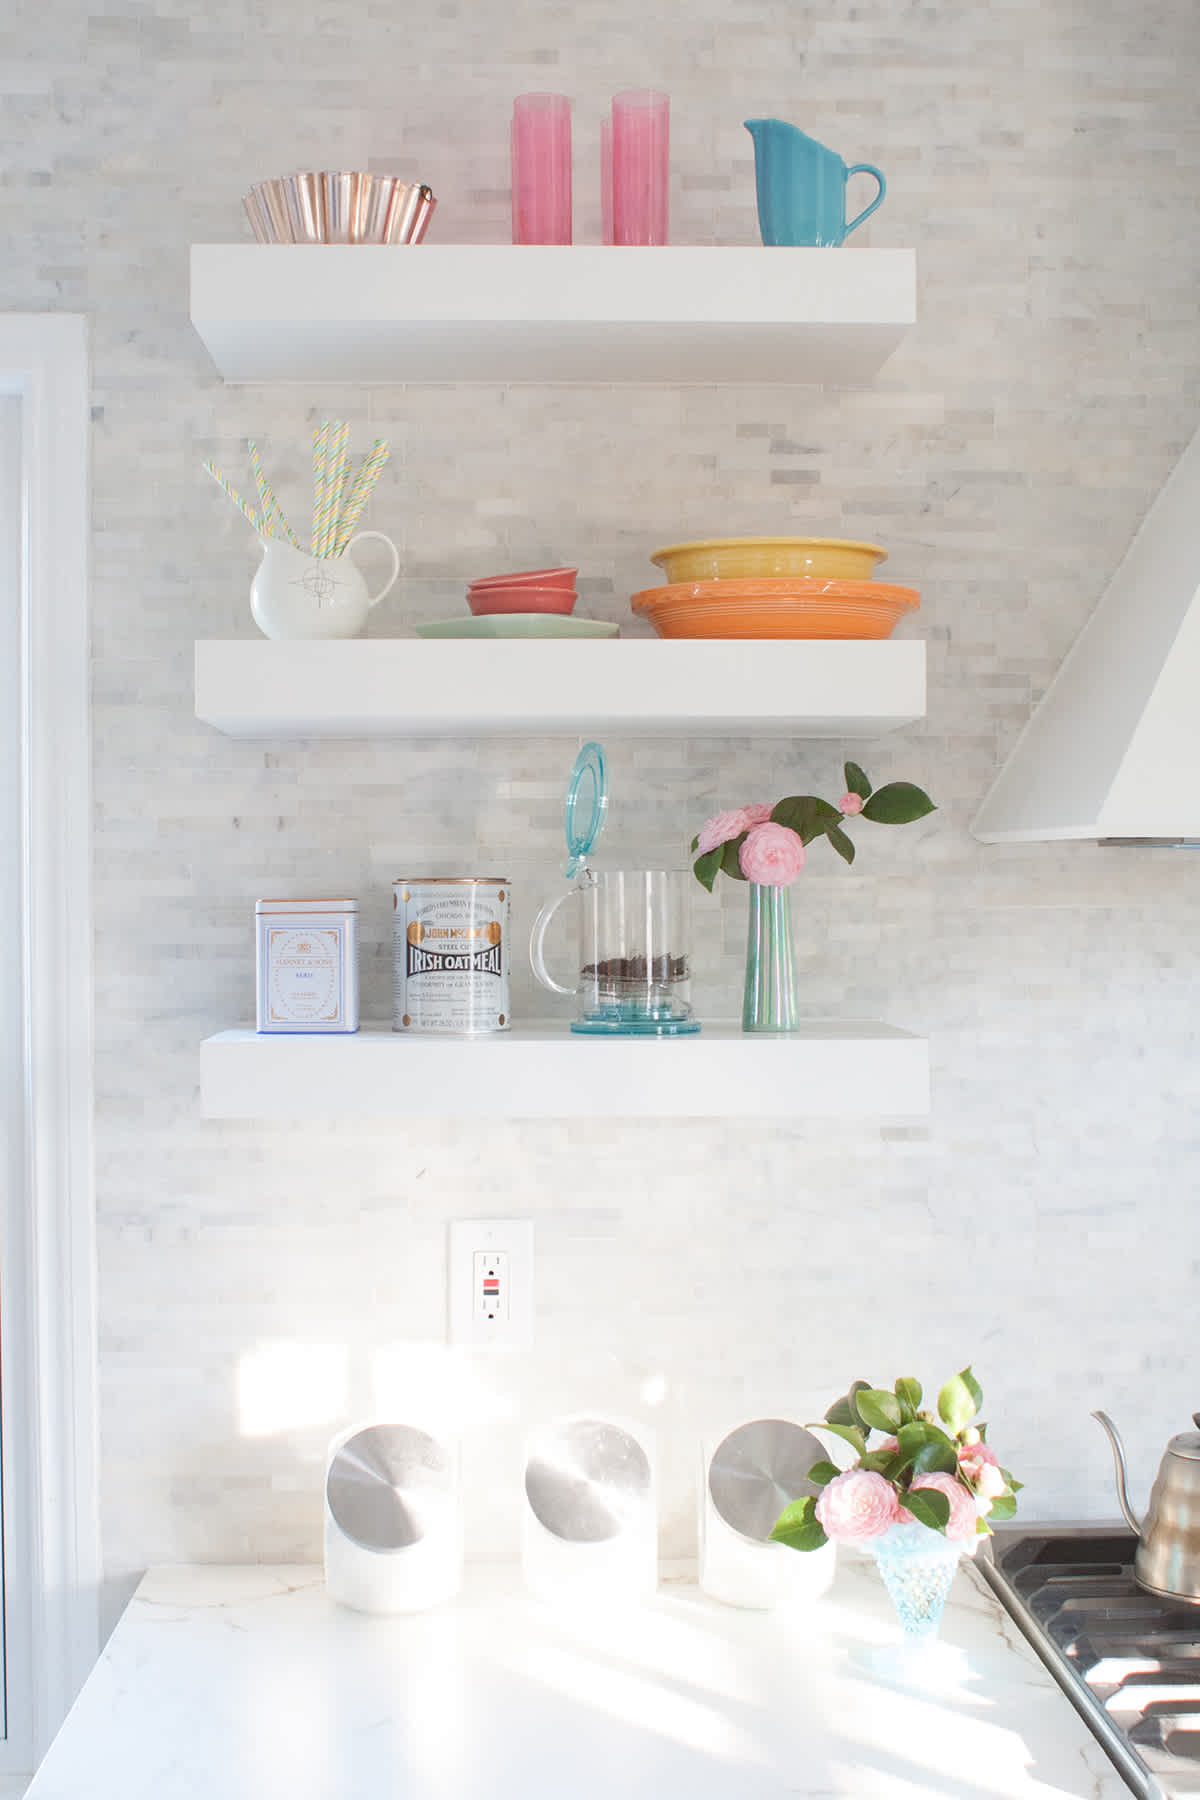 How To Organize Open Shelving In A Kitchen - Lay Baby Lay